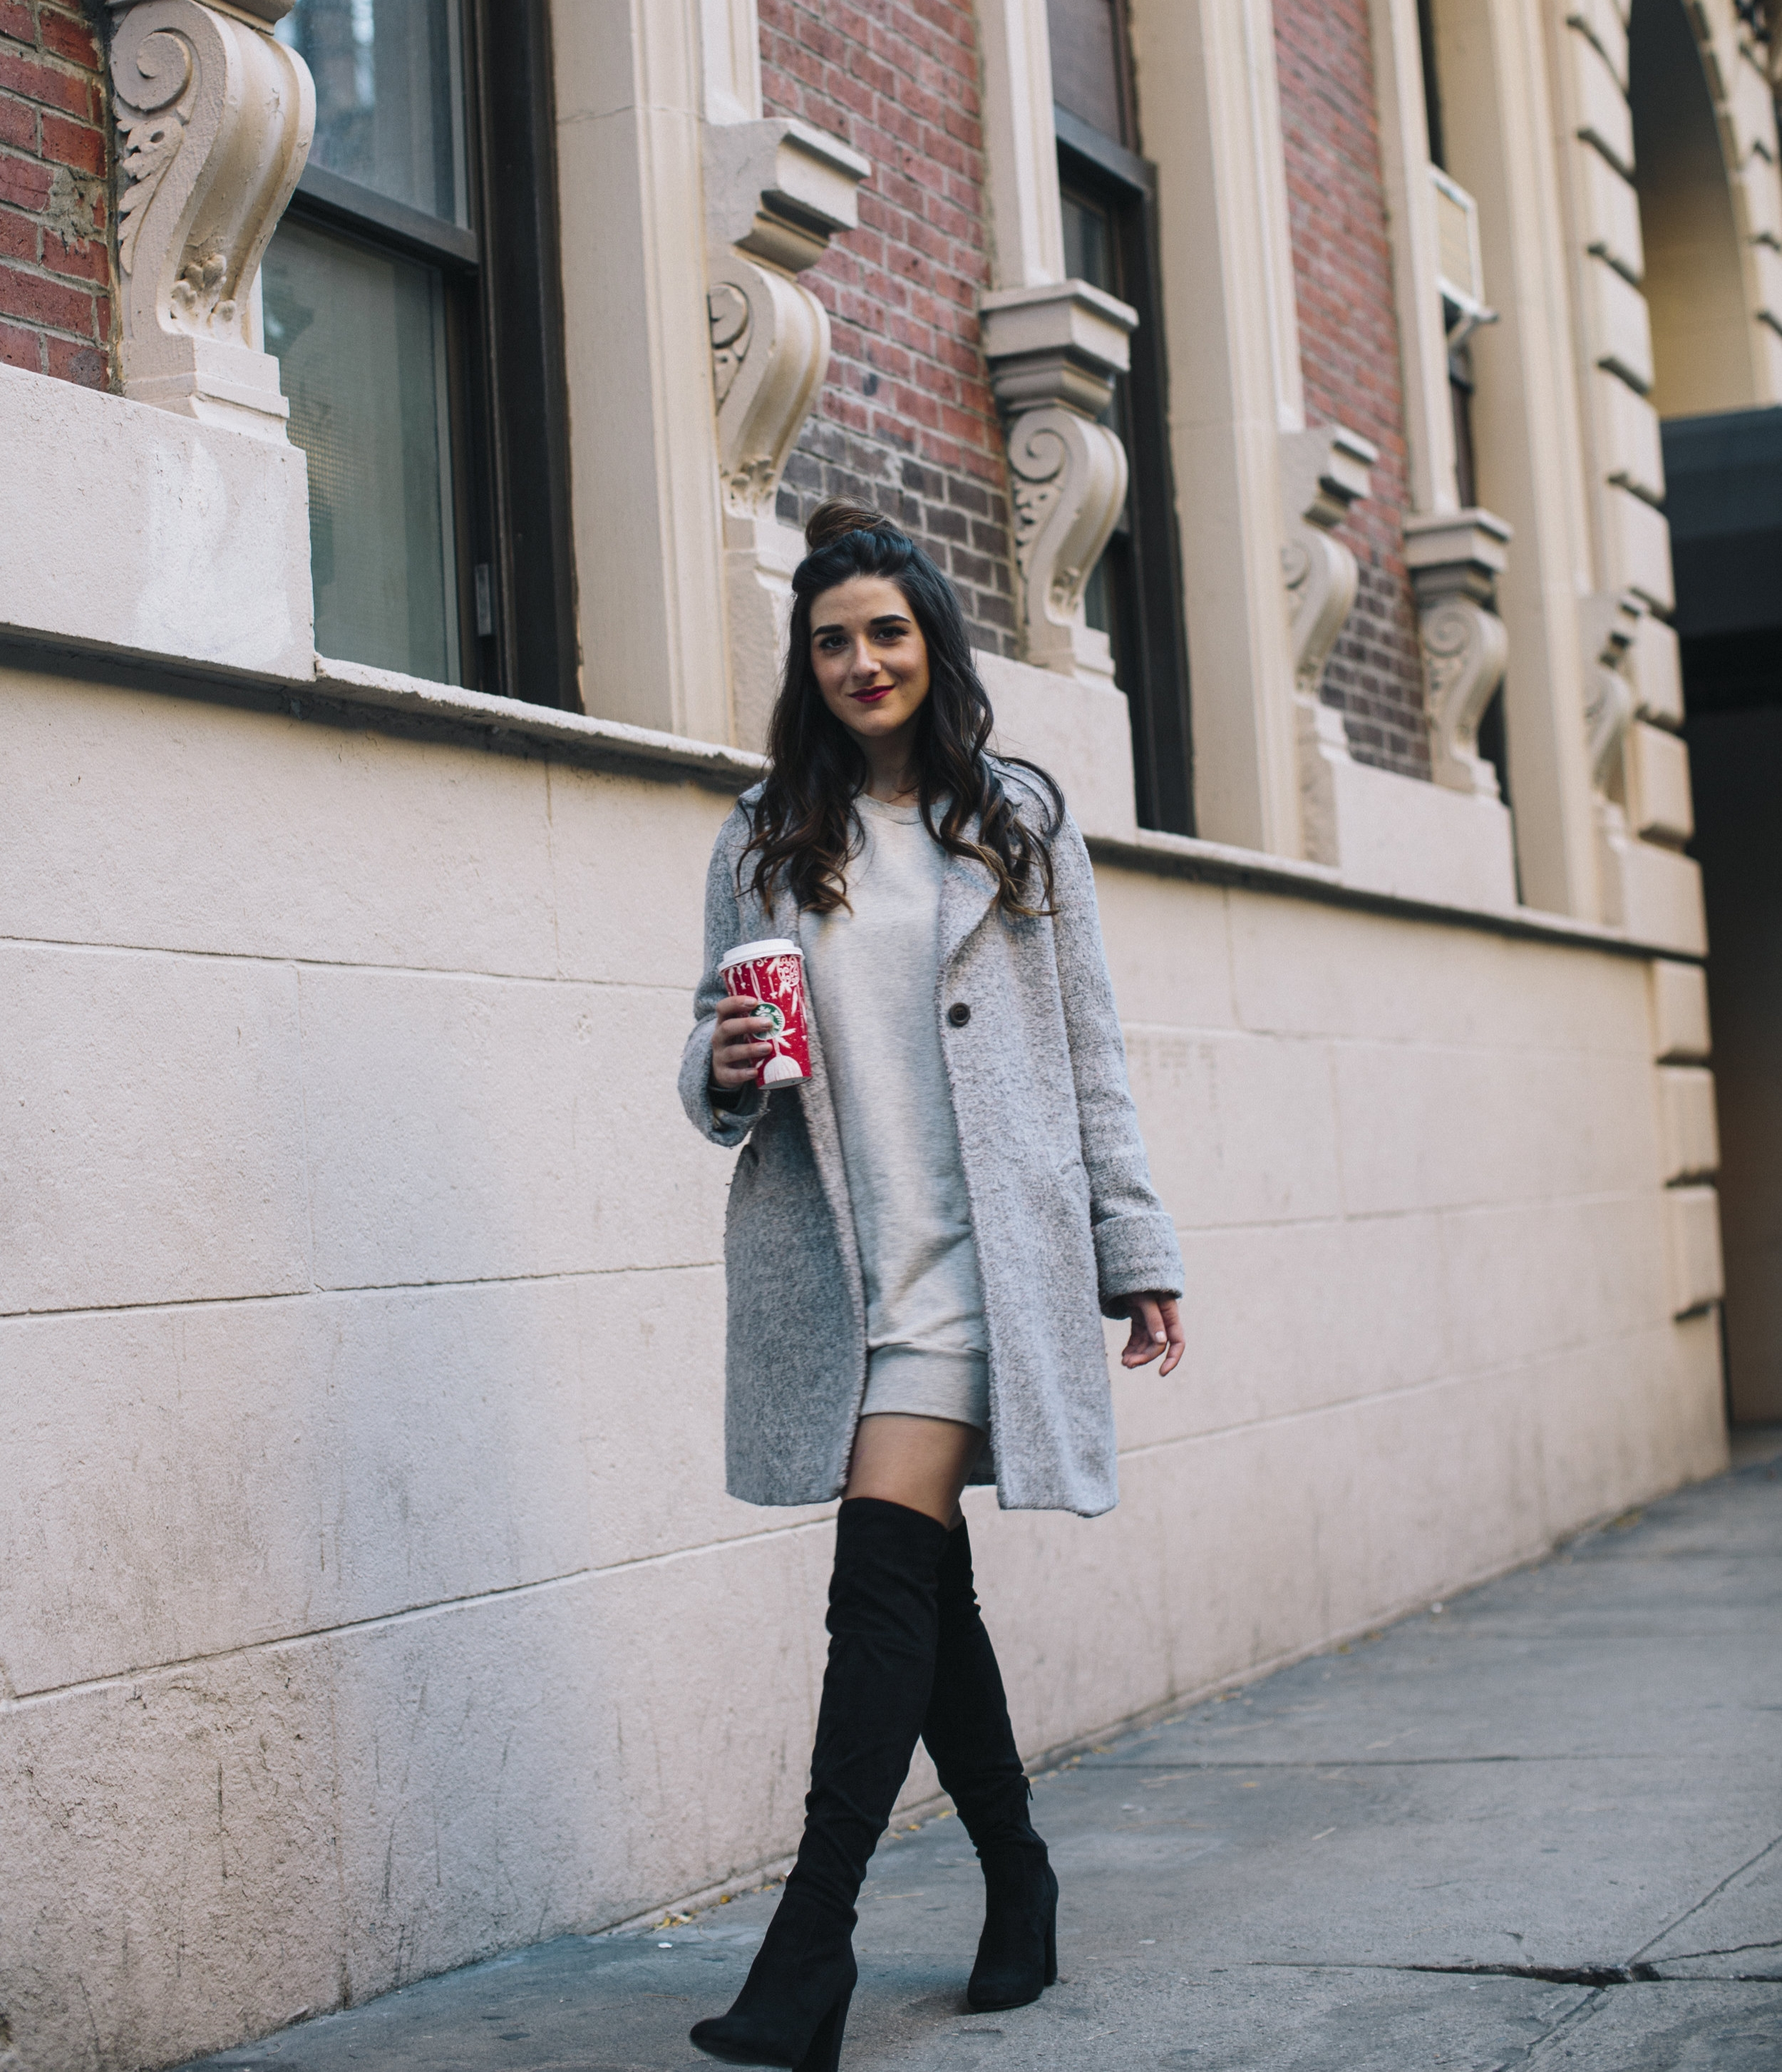 All Grey Look OTK Boots Why I Hate Fashion Week Esther Santer Fashion Blog Louboutins & Love NYC Street Style Blogger Outfit OOTD Trendy Sweatshirt Dress Topknot Coat Women Girl Shoes Shopping Zara Accessories Monochome Wear Beauty Winter Look Clothes.jpg